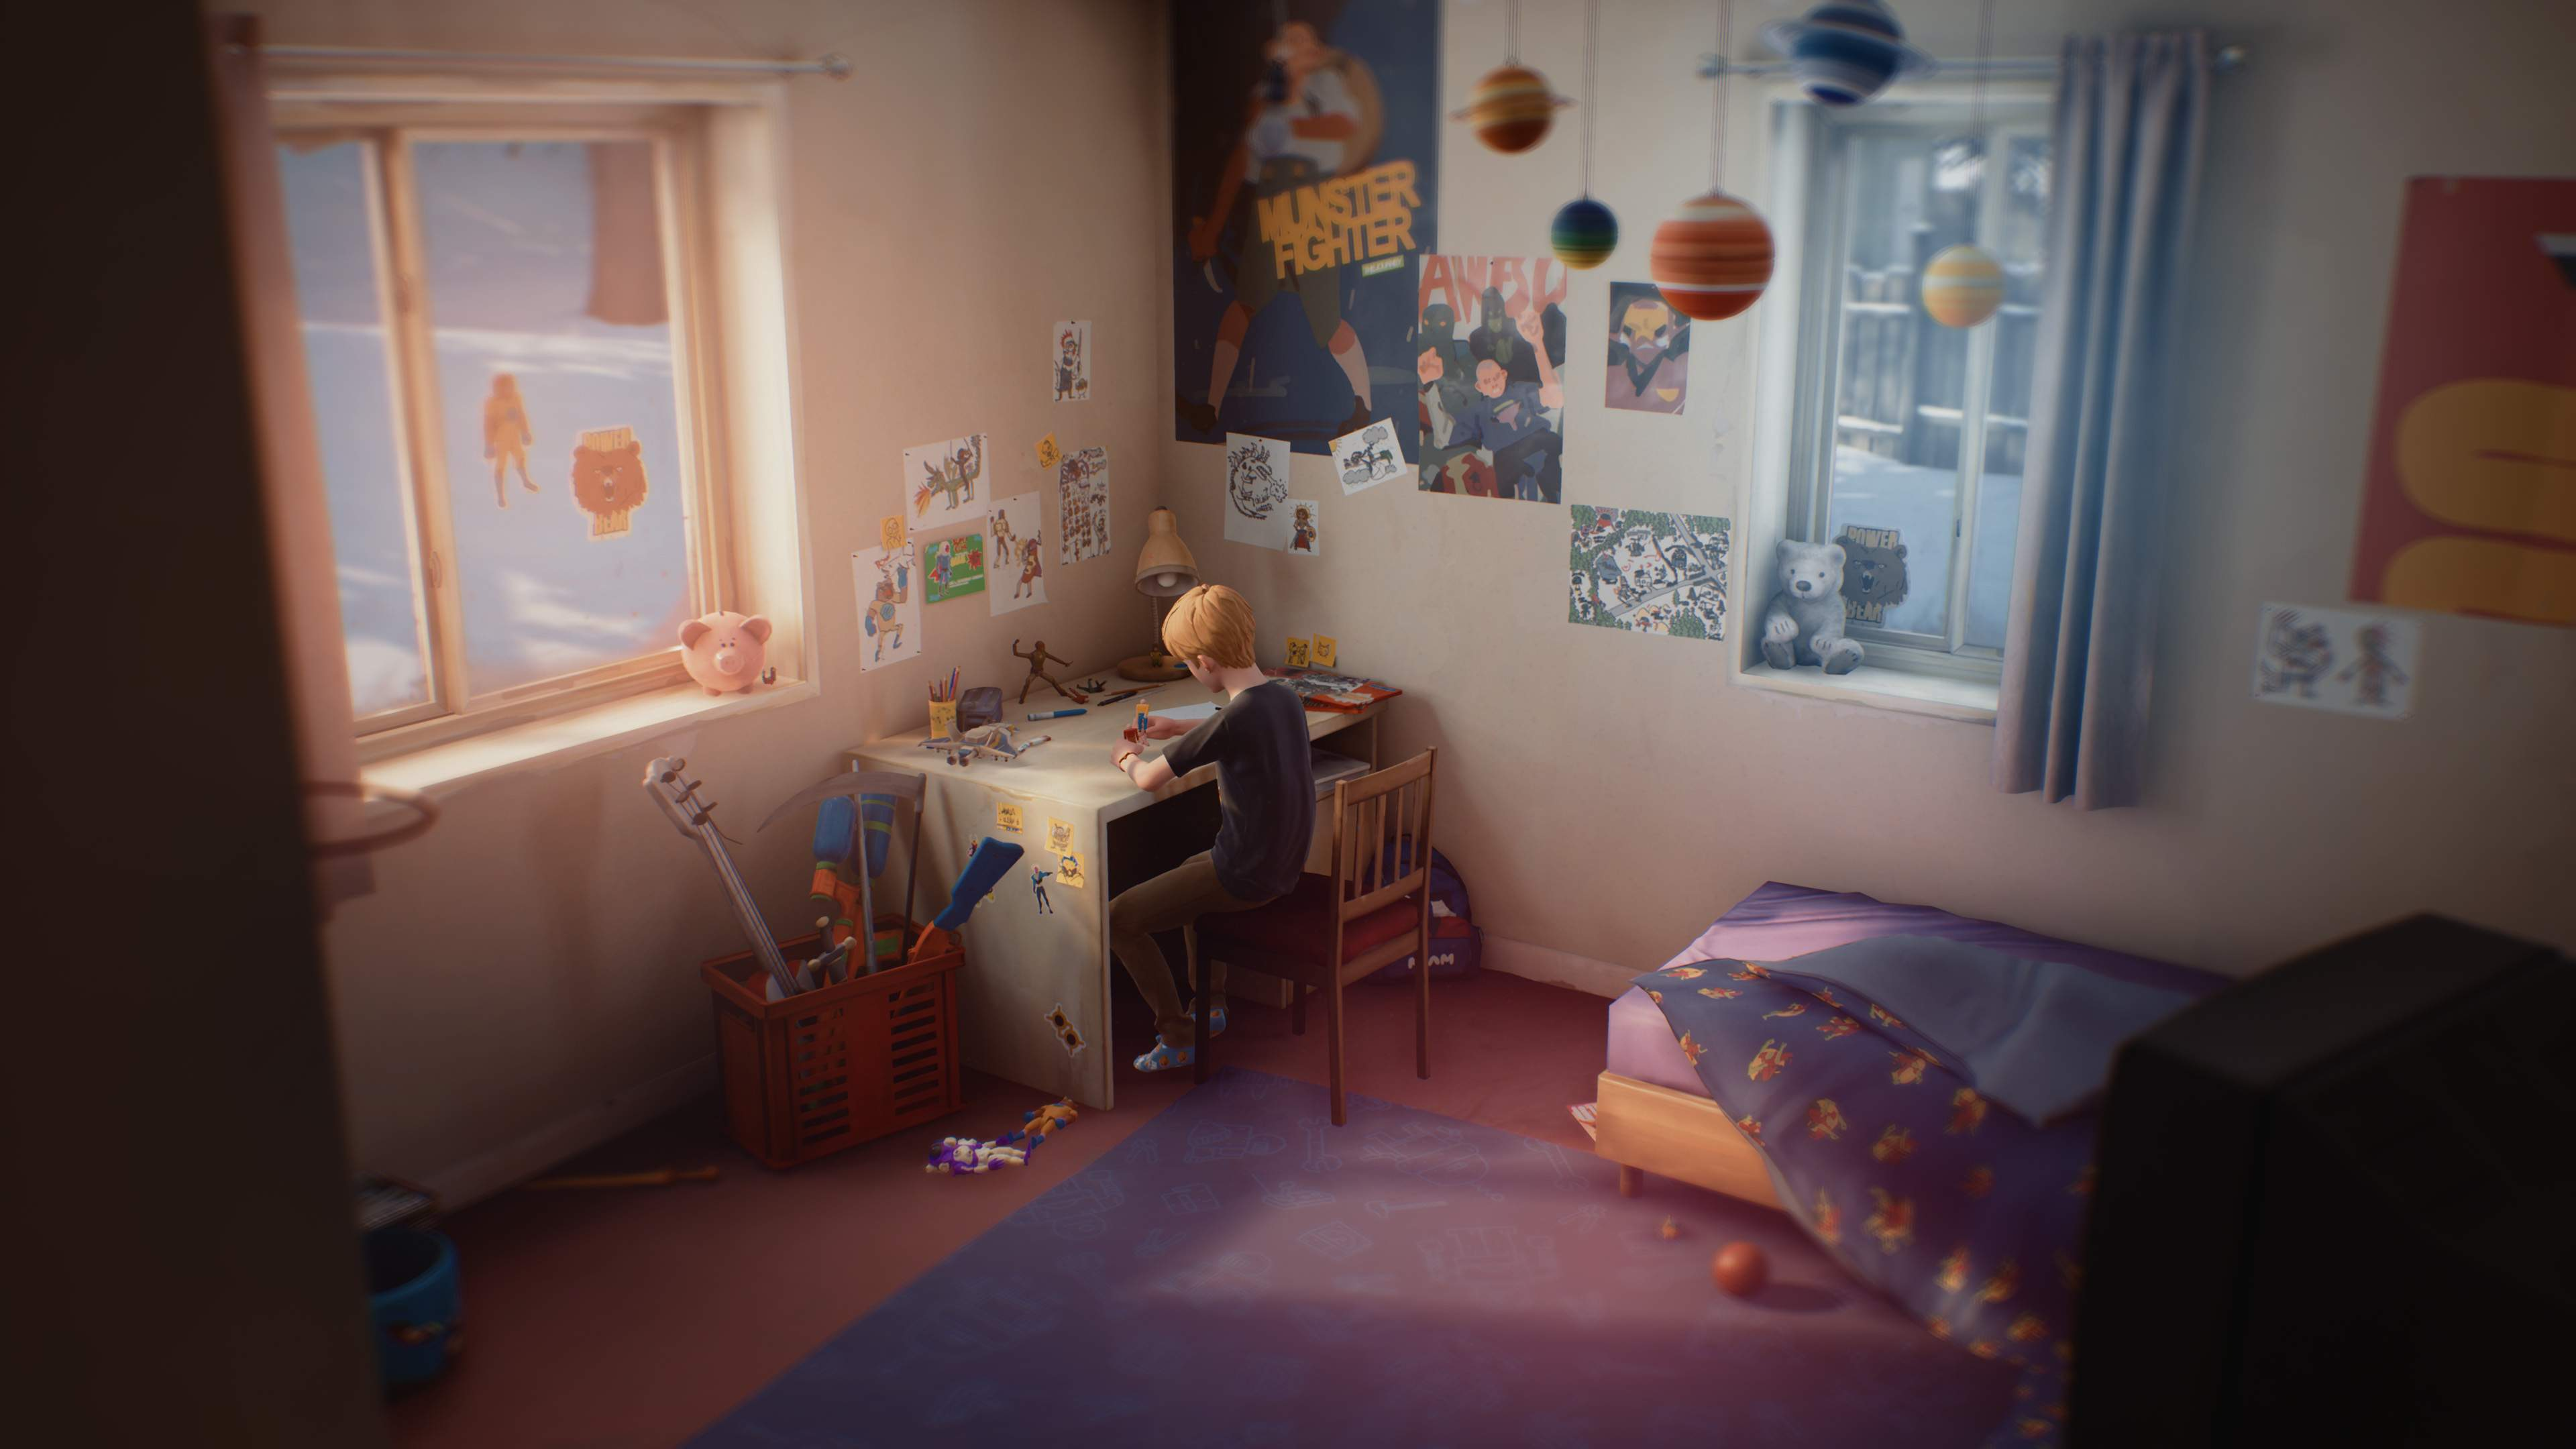 A young boy, Chris, sits at the desk in his bedroom, playing. A display of the planets hangs from the ceiling.